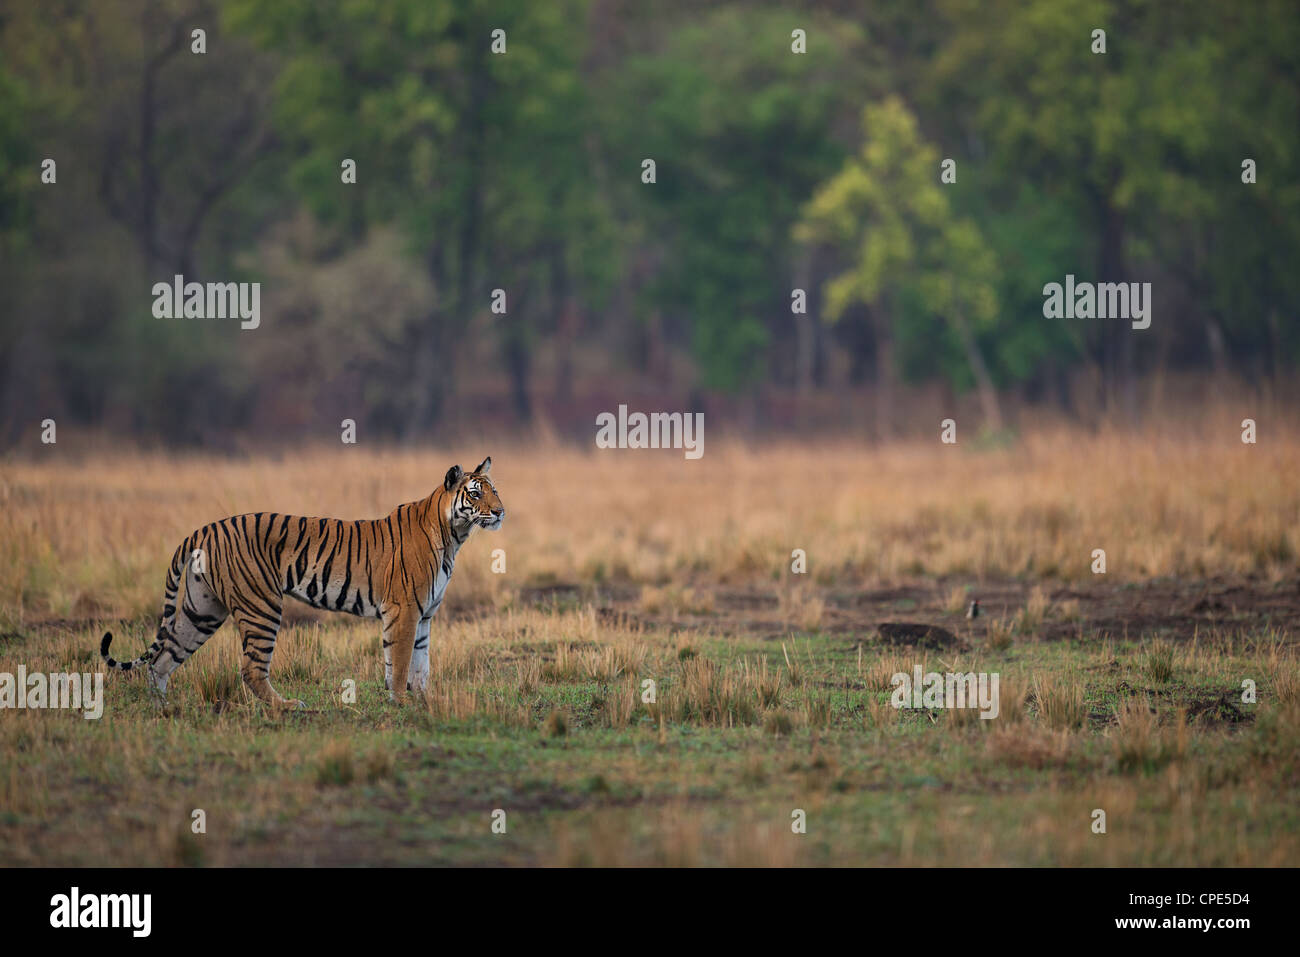 Adult female Bengal Tigress on a hunt in an open grassland in Bandhavgarh Tiger Reserve, Madhya Pradesh, India - Stock Image